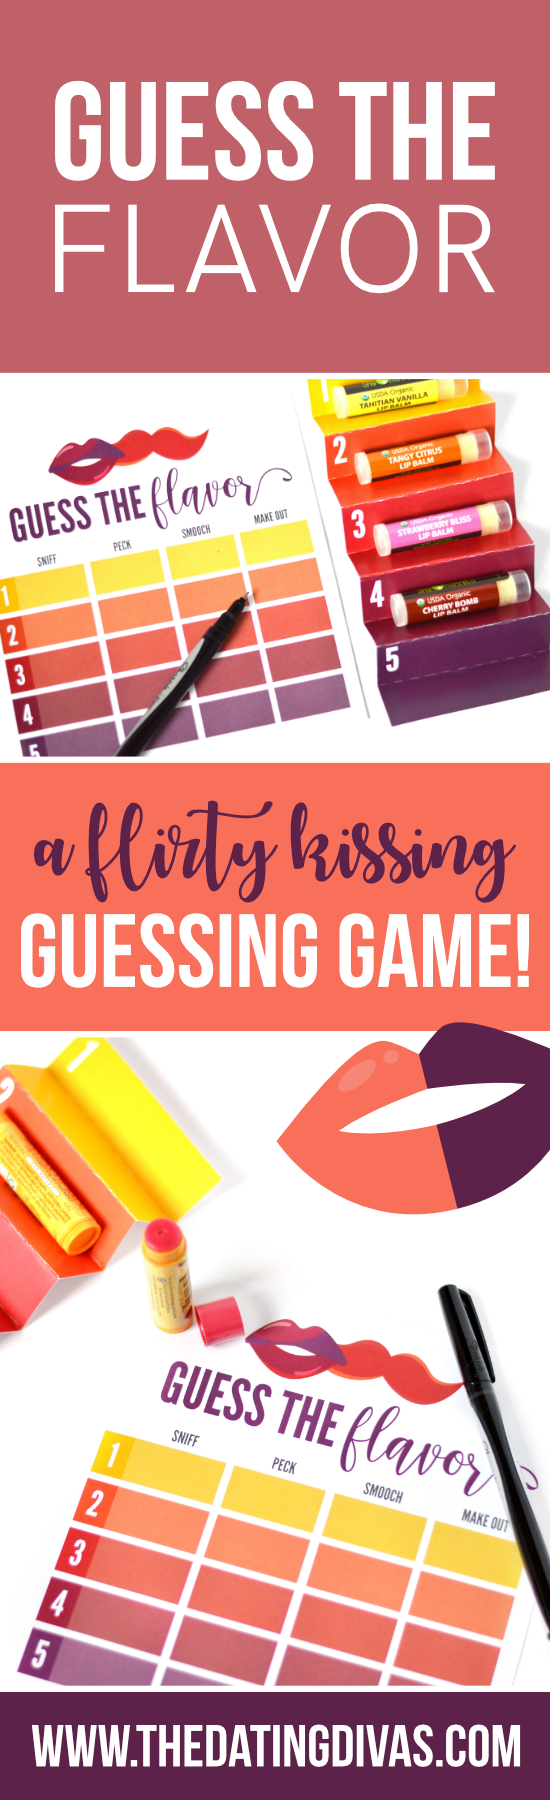 A sexy kissing game for the bedroom called Guess the Flavor #sexykissinggames #foreplaygame